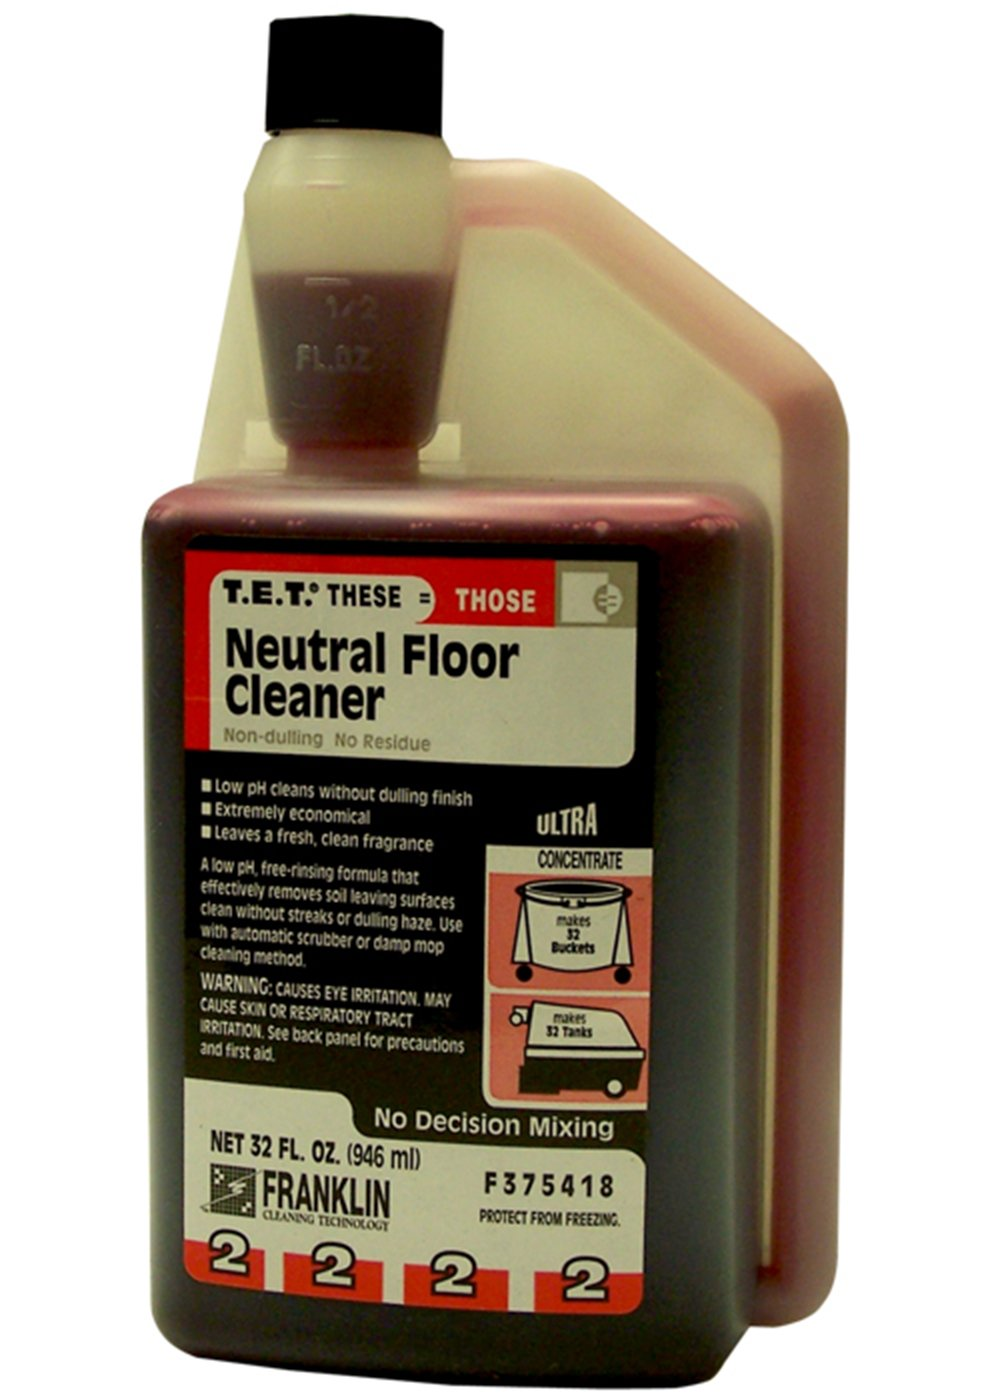 Franklin Cleaning Technology F375418 T.E.T. #2 Neutral Floor Cleaner, 32 Ounce (Pack of 3)